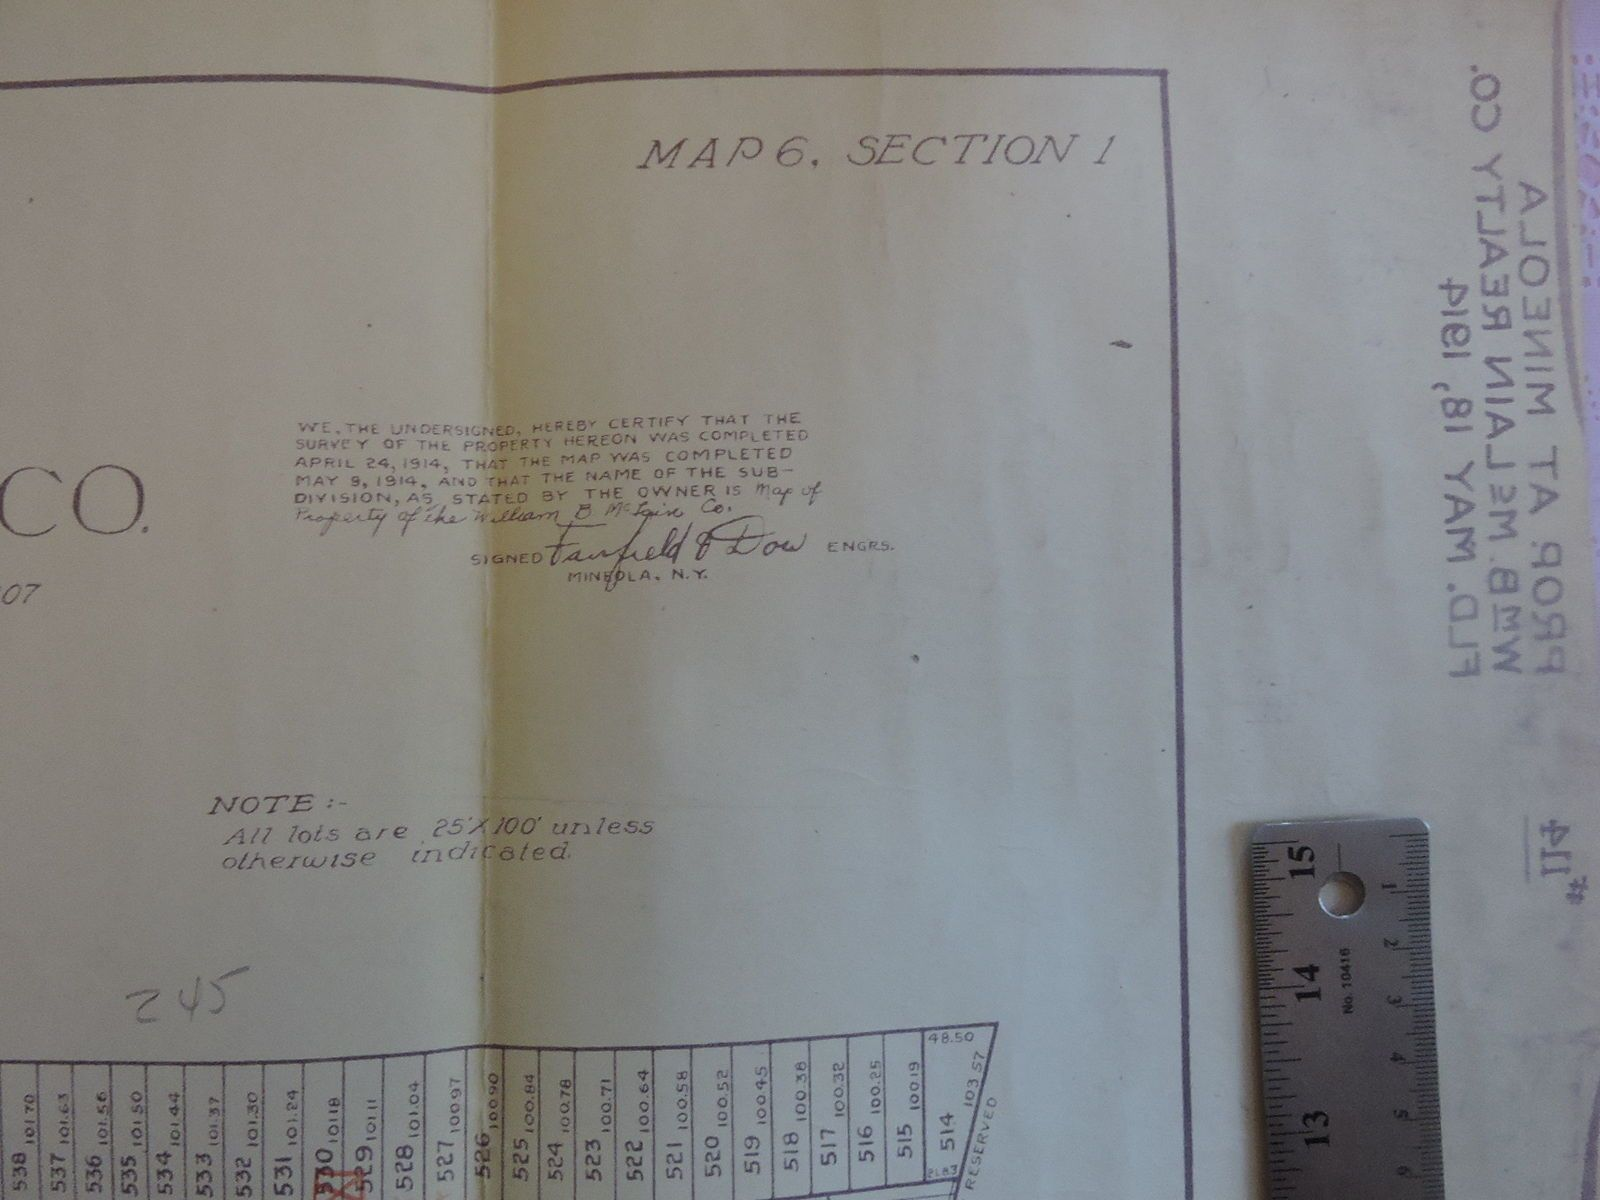 1914 Original Mineola Survey Map Showing Layout Of Plots For Sale Along Westbury Avenue Dow Engineering